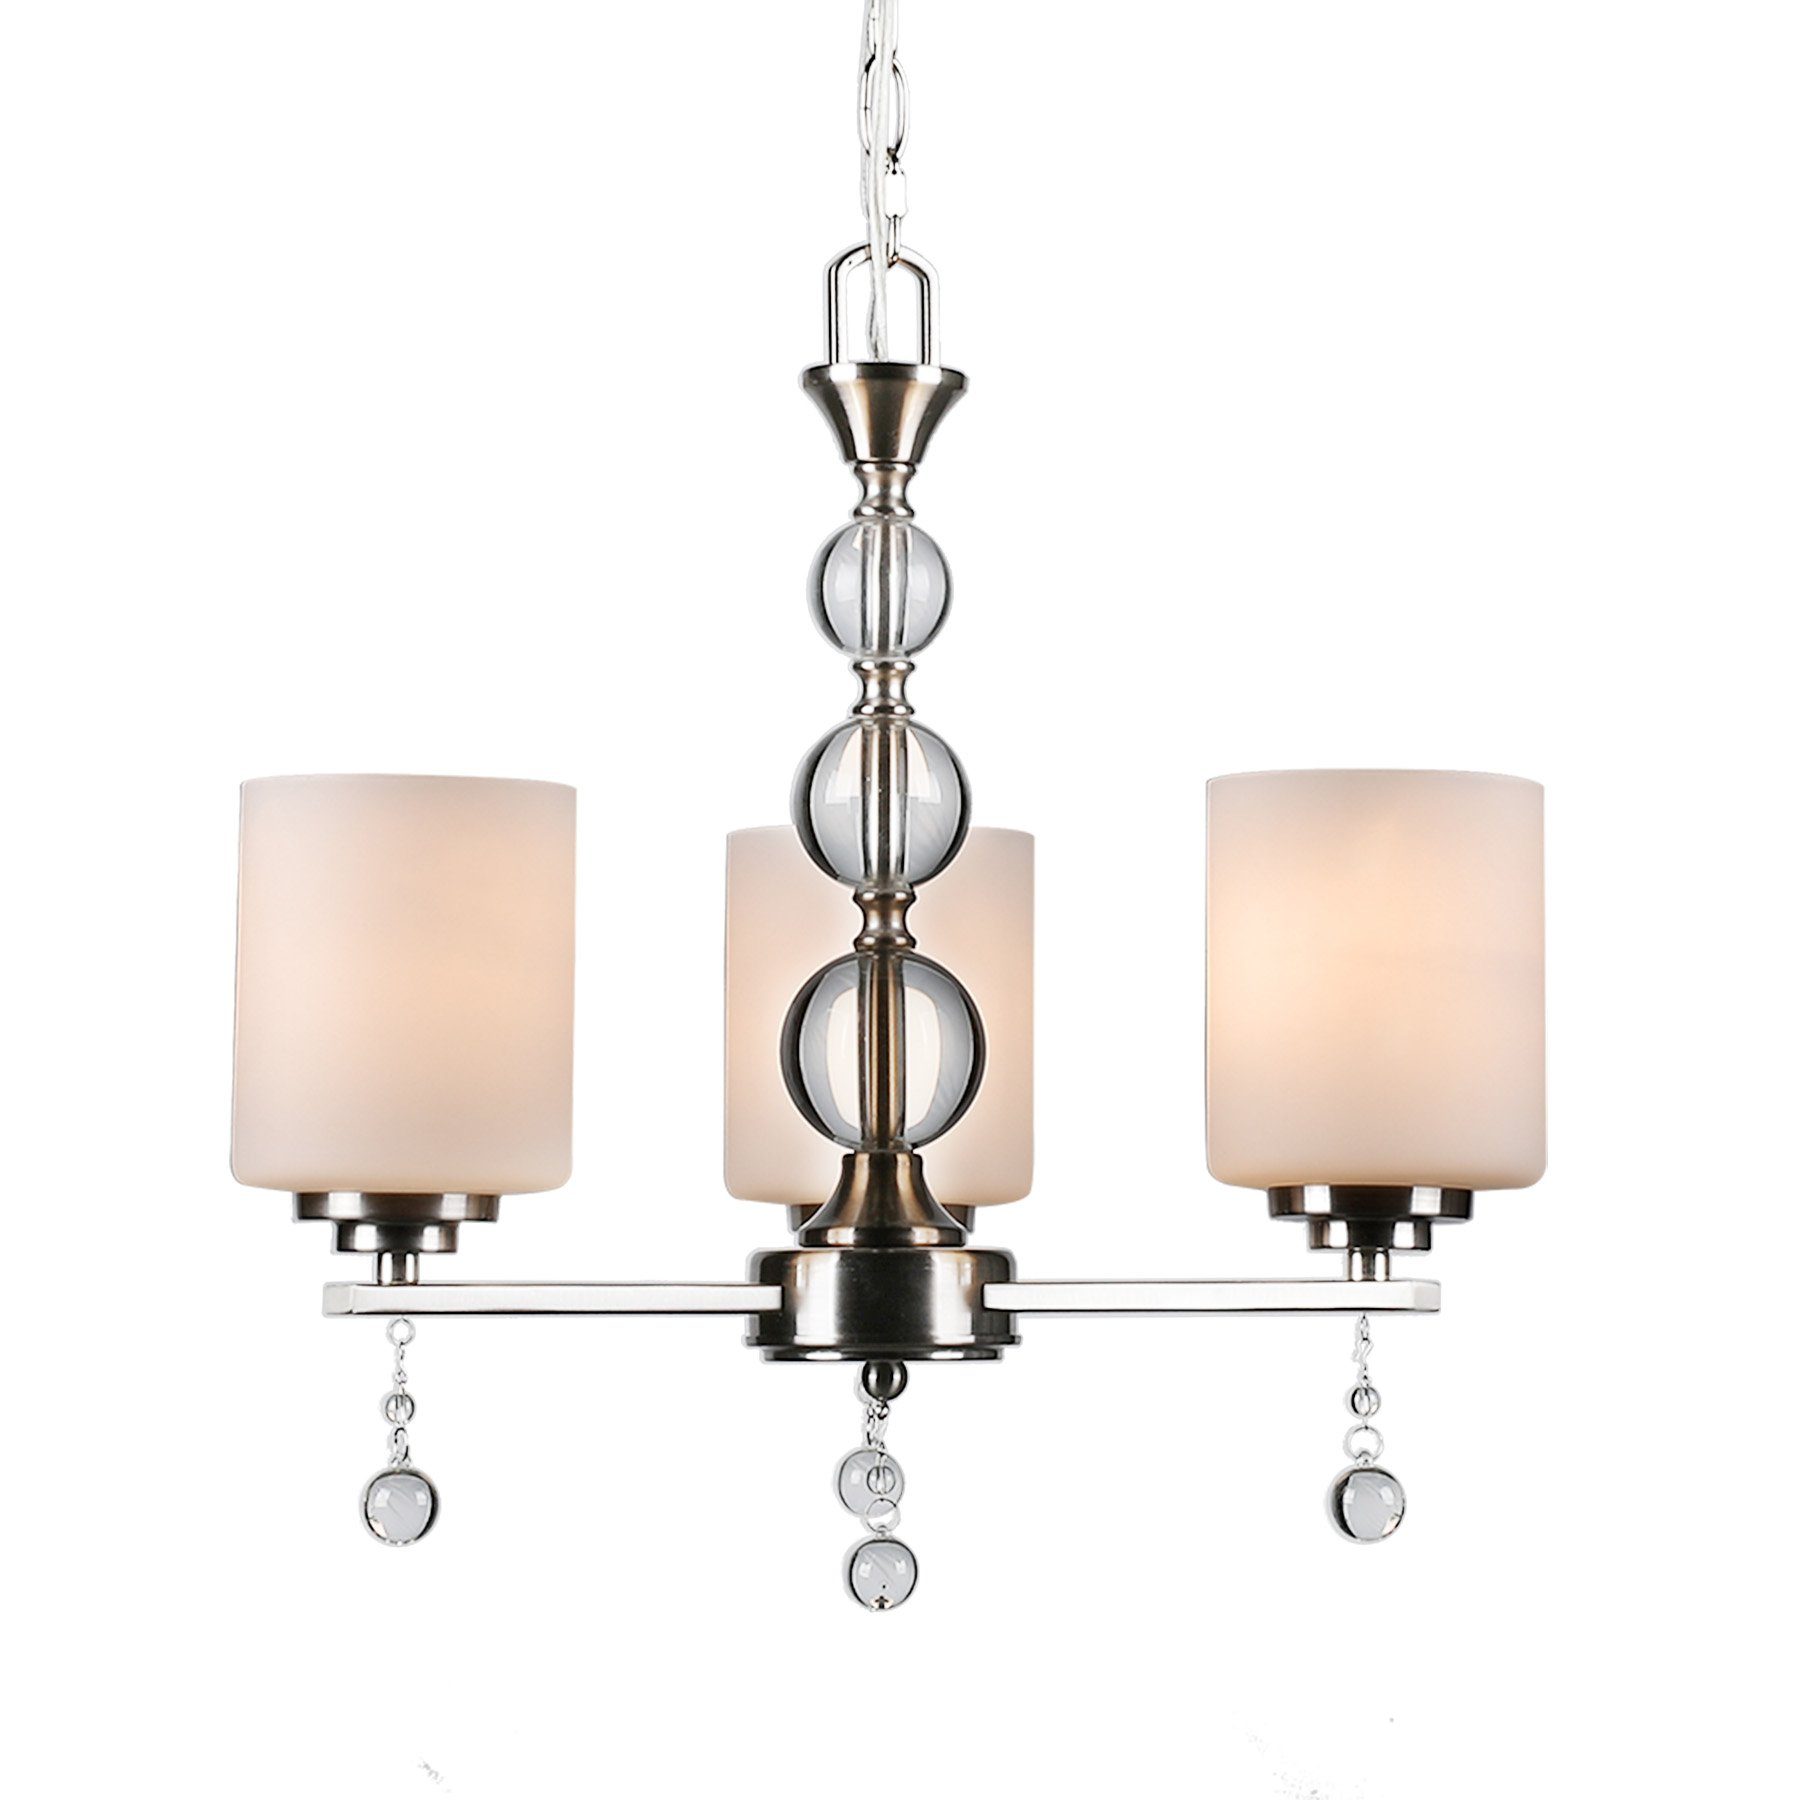 CO-Z Brushed Nickel 3 Light Chandelier, Contemporary Ceiling Lighting Fixtures Dining Room Hallway K9 Crystal Balls, w/Satin Etched Cased Opal Glasss Shade